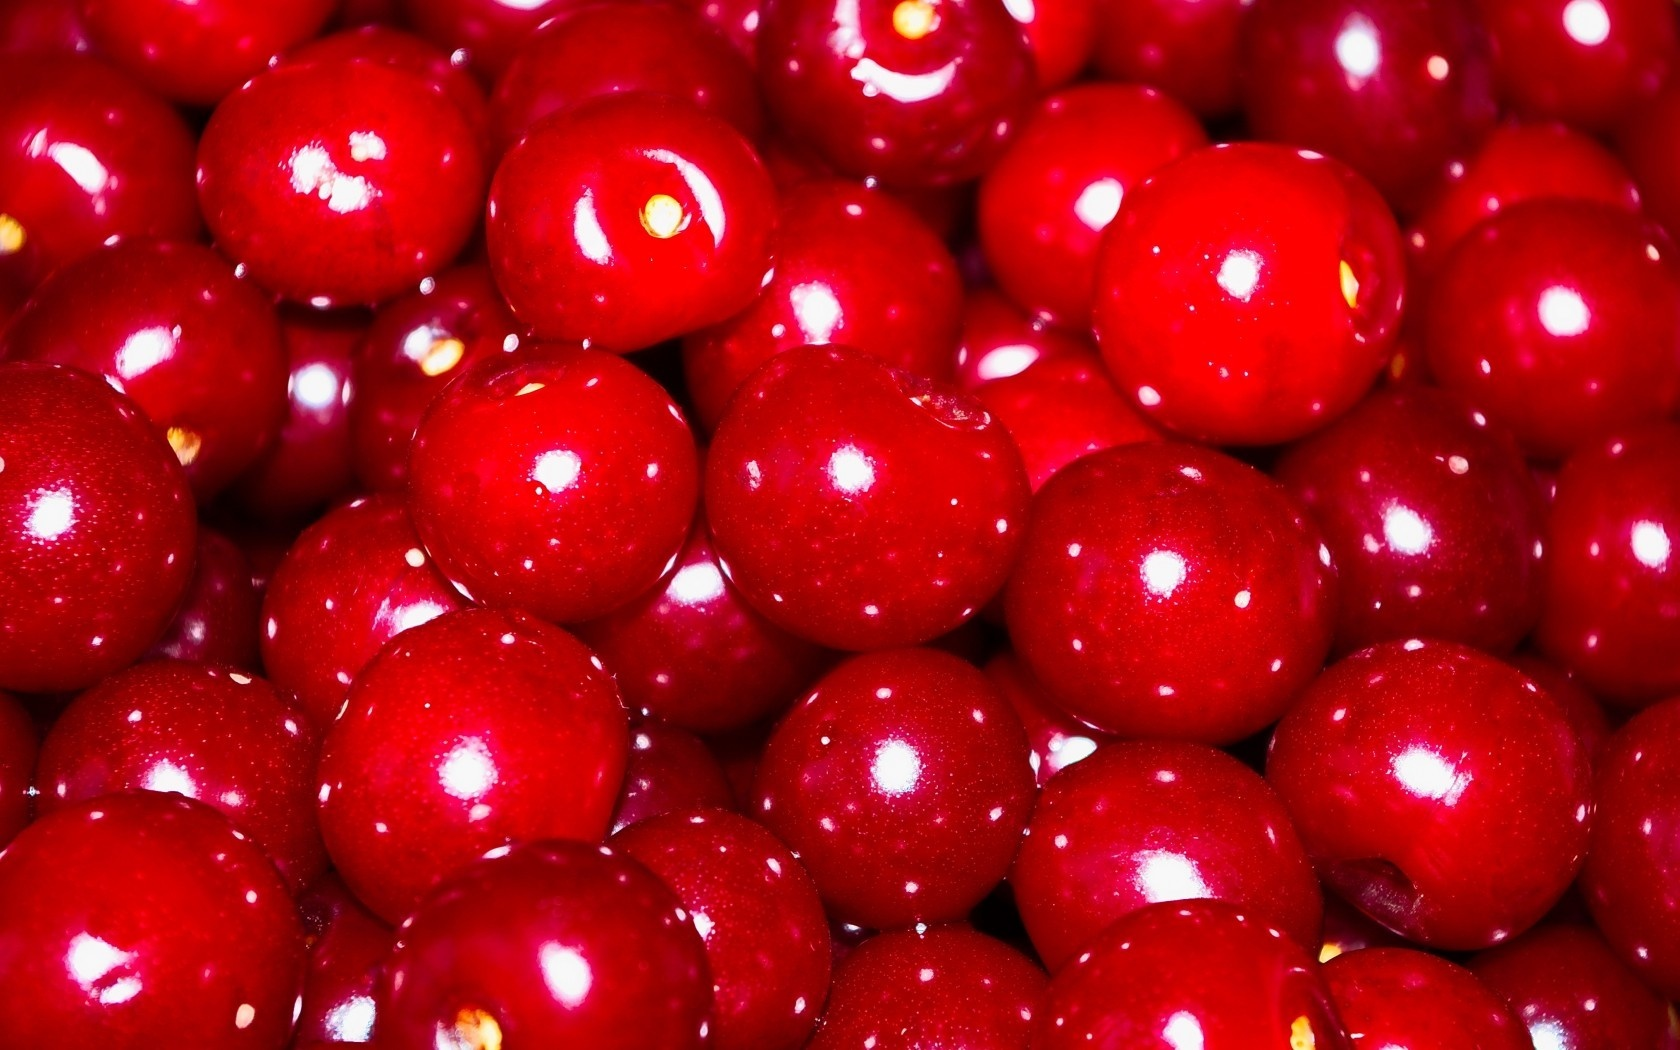 Cherry texture background